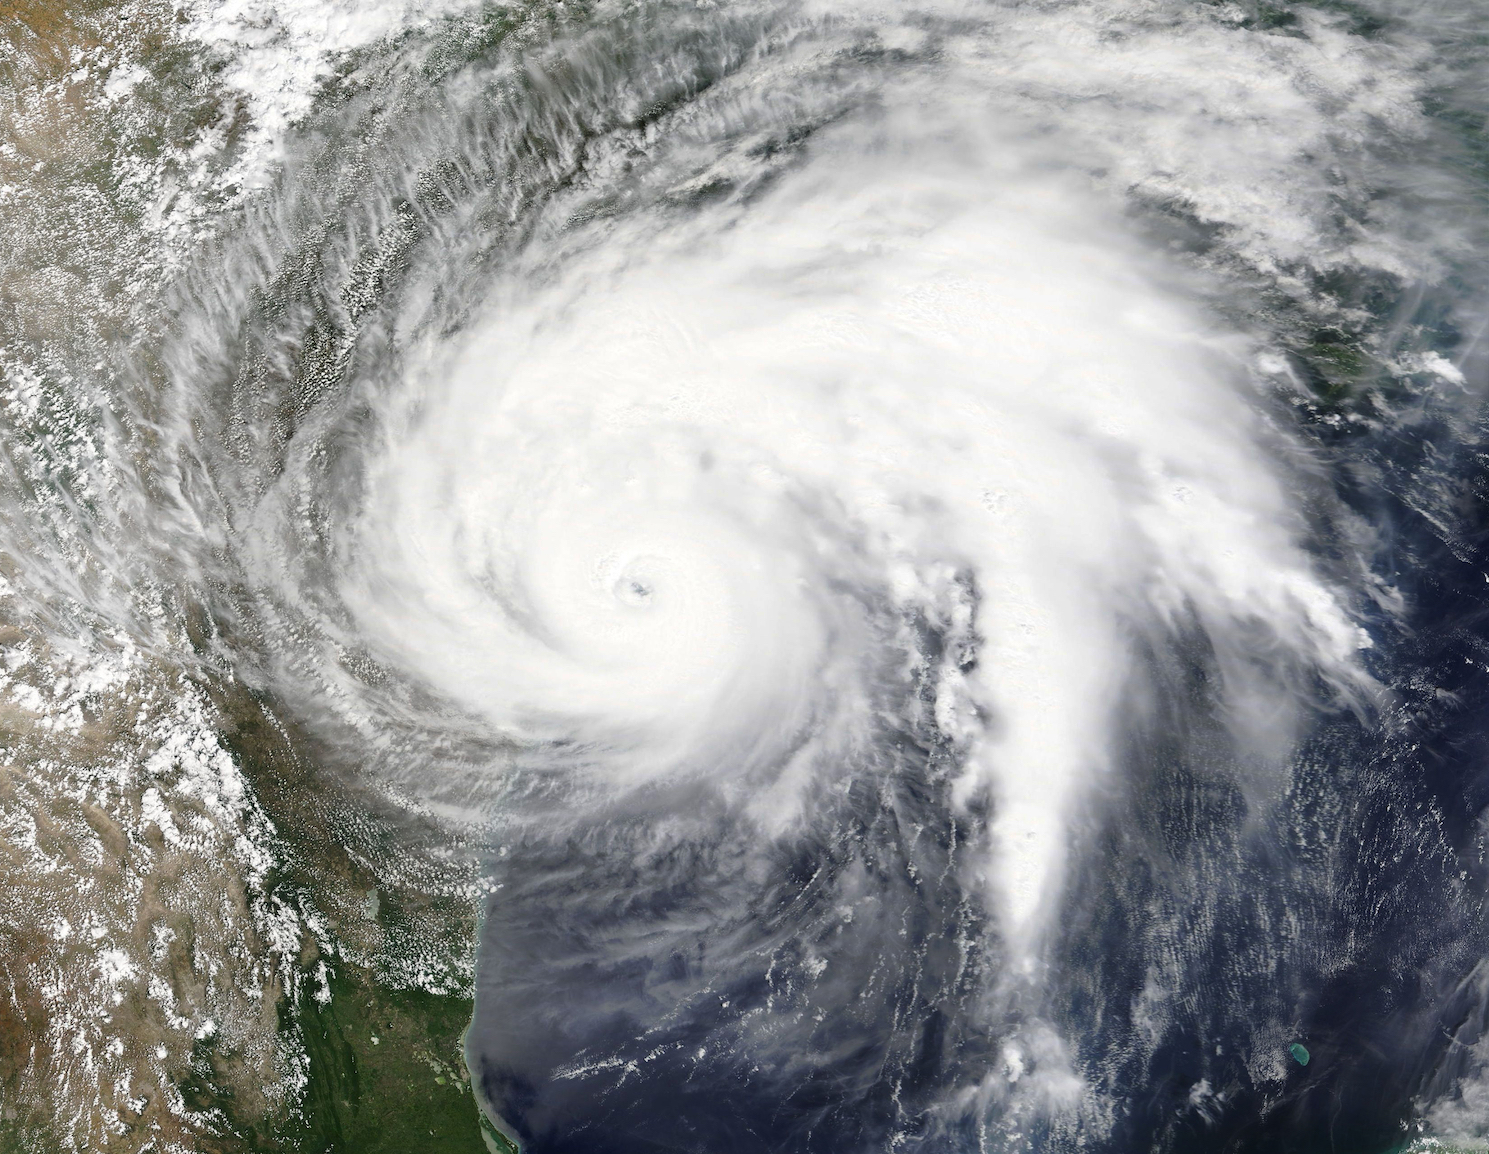 The hottest ocean waters ever recorded in the Gulf of Mexico fueled the strength of Hurricane Harvey, according to a new study.